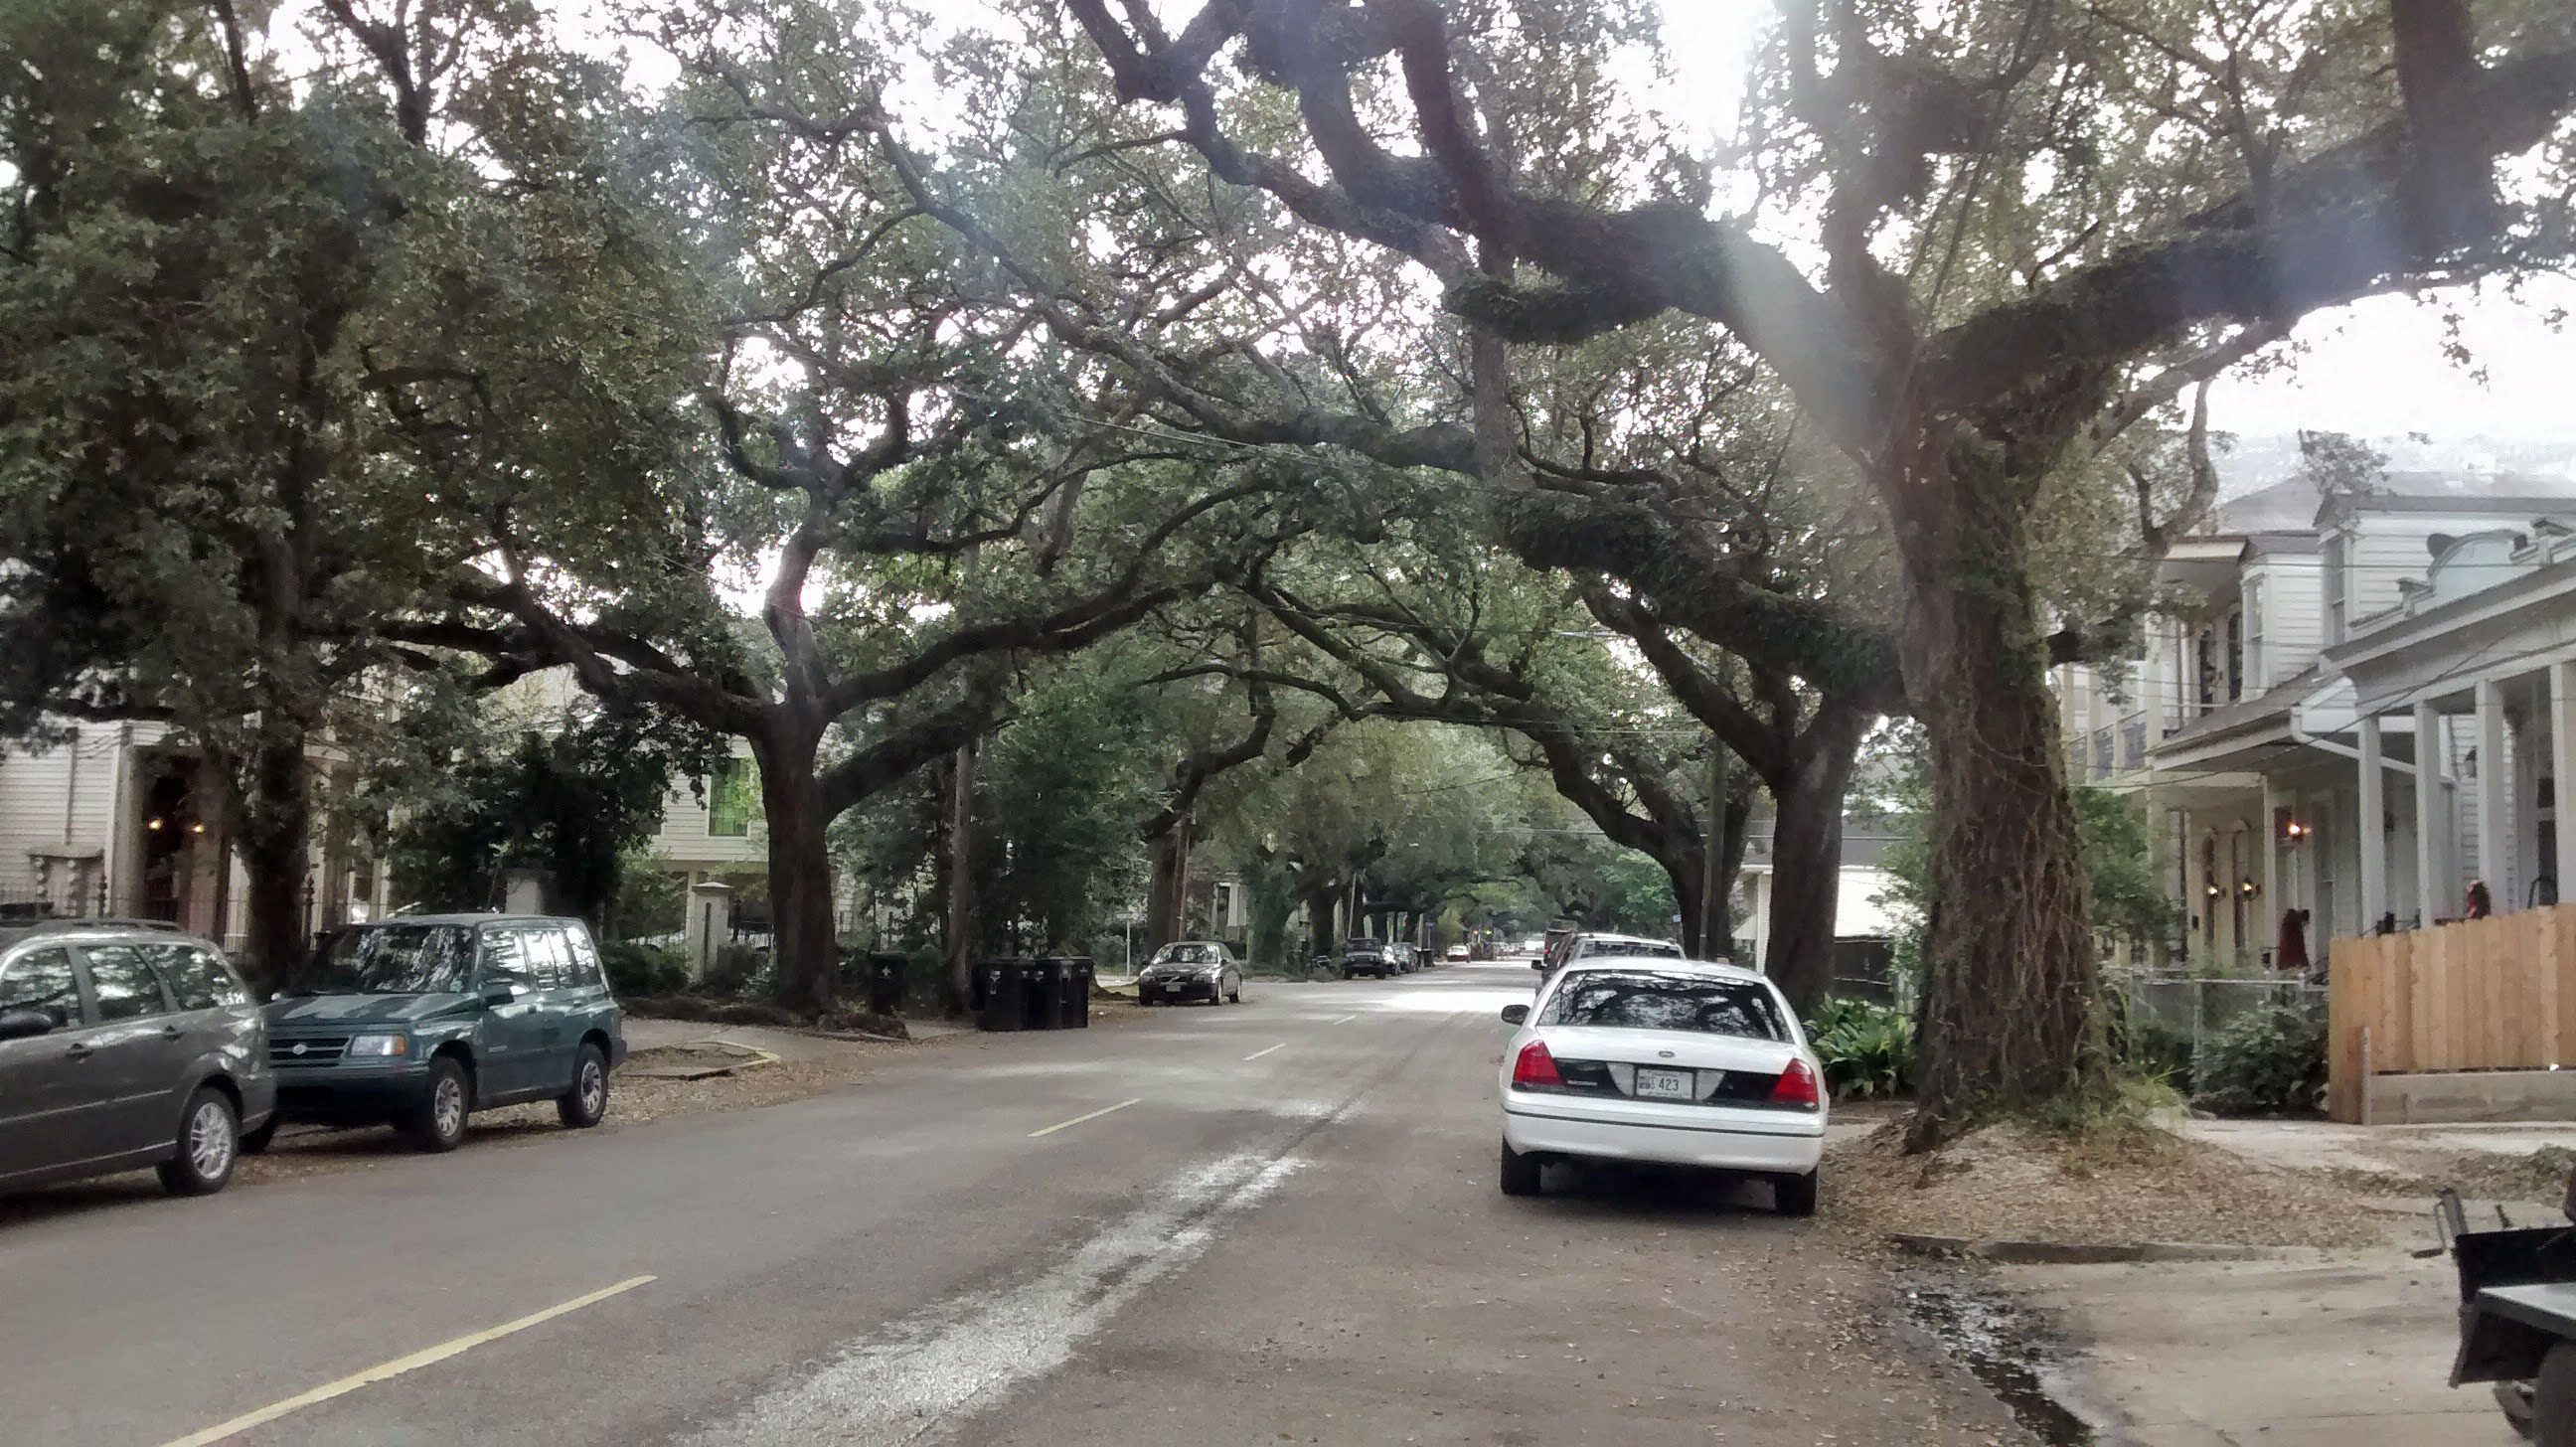 Cemetries 1024x575 - Visiting New Orleans In January: Top 8 Things To Do